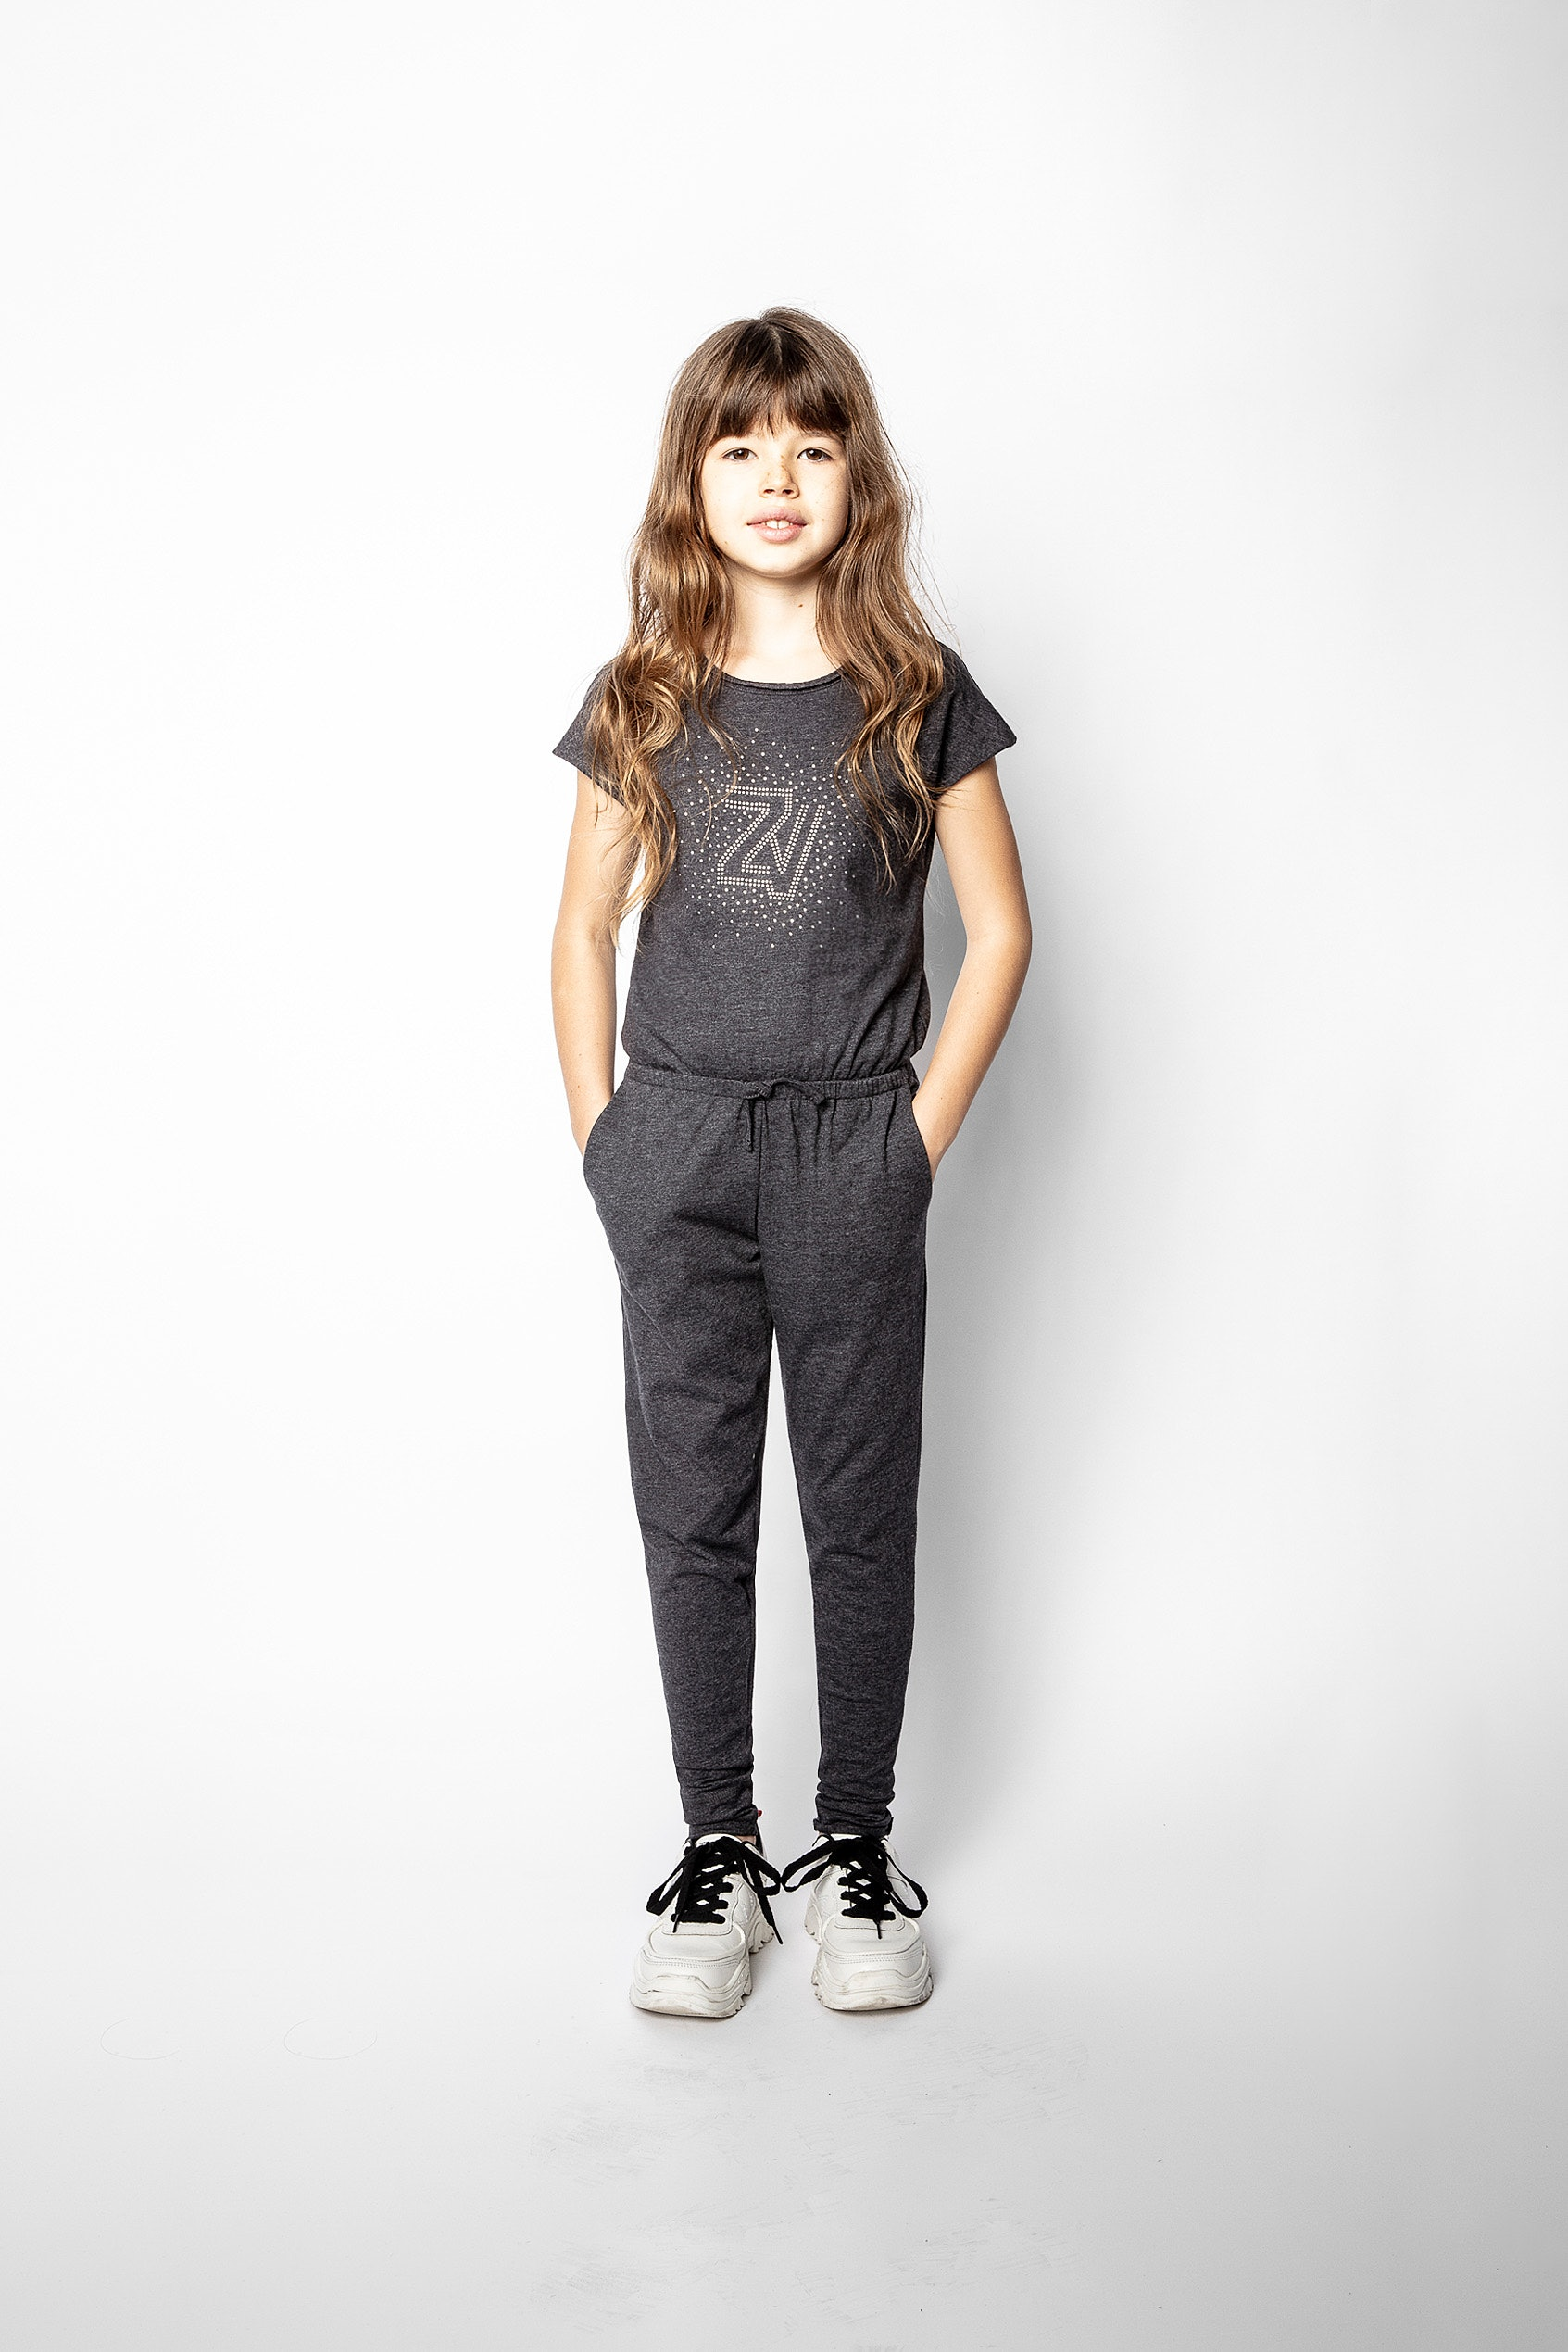 Child's Caly jumpsuit